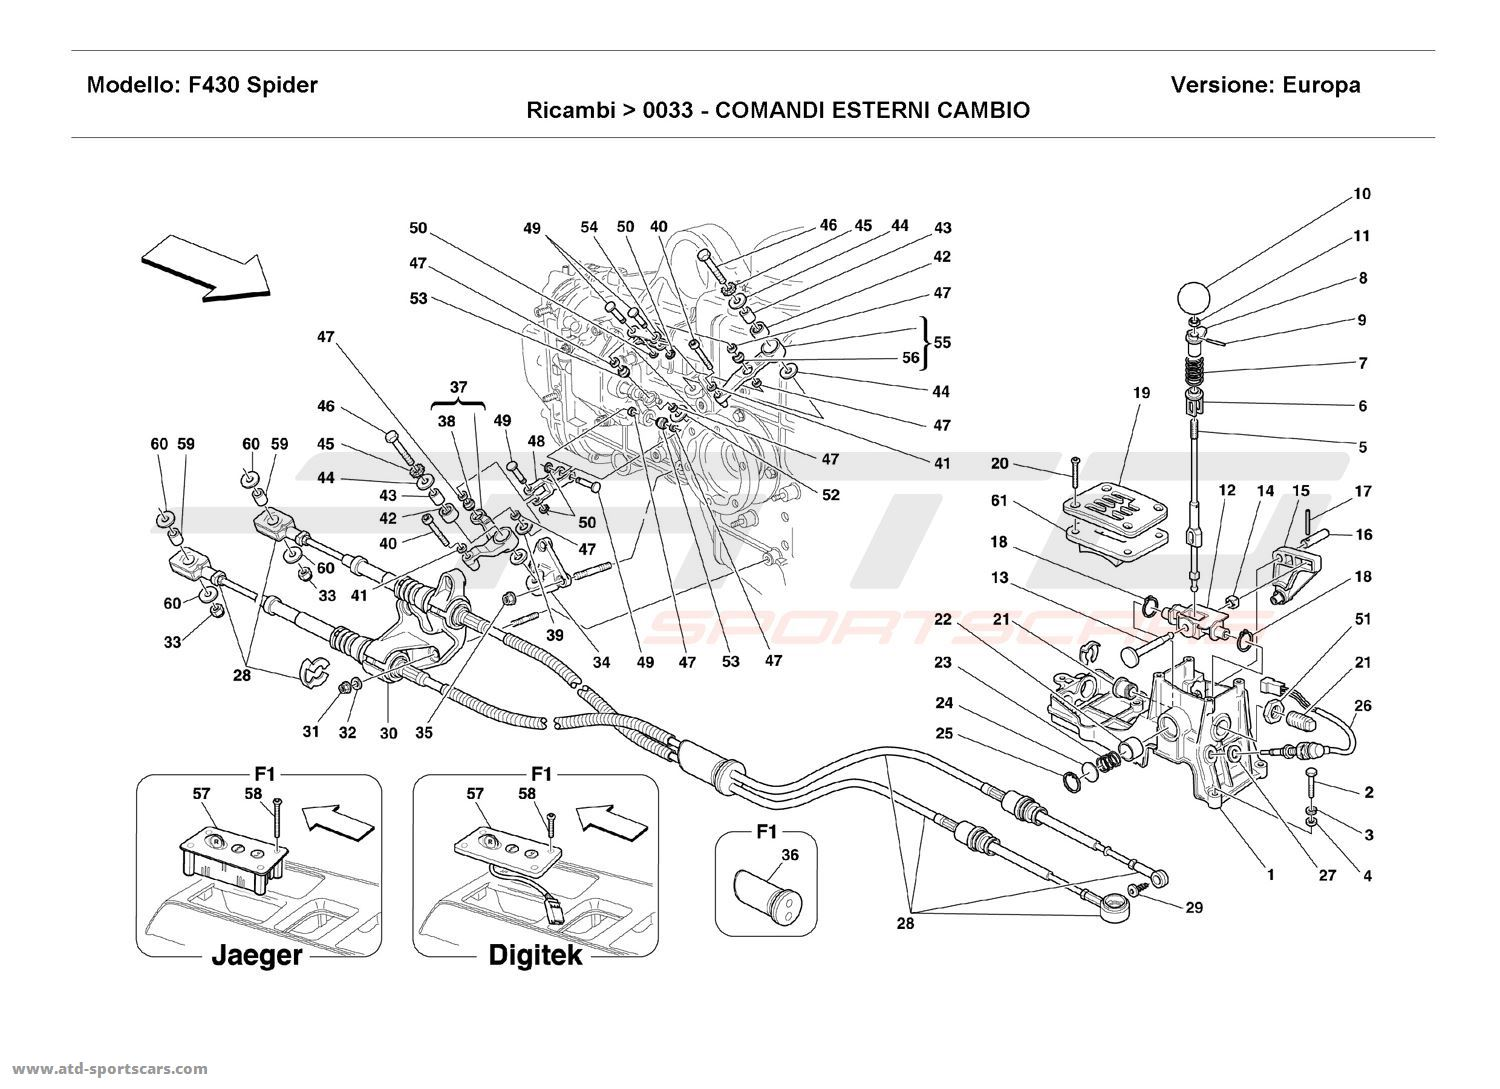 Ferrari F430 Spider OUTSIDE GEARBOX CONTROLS parts at ATD